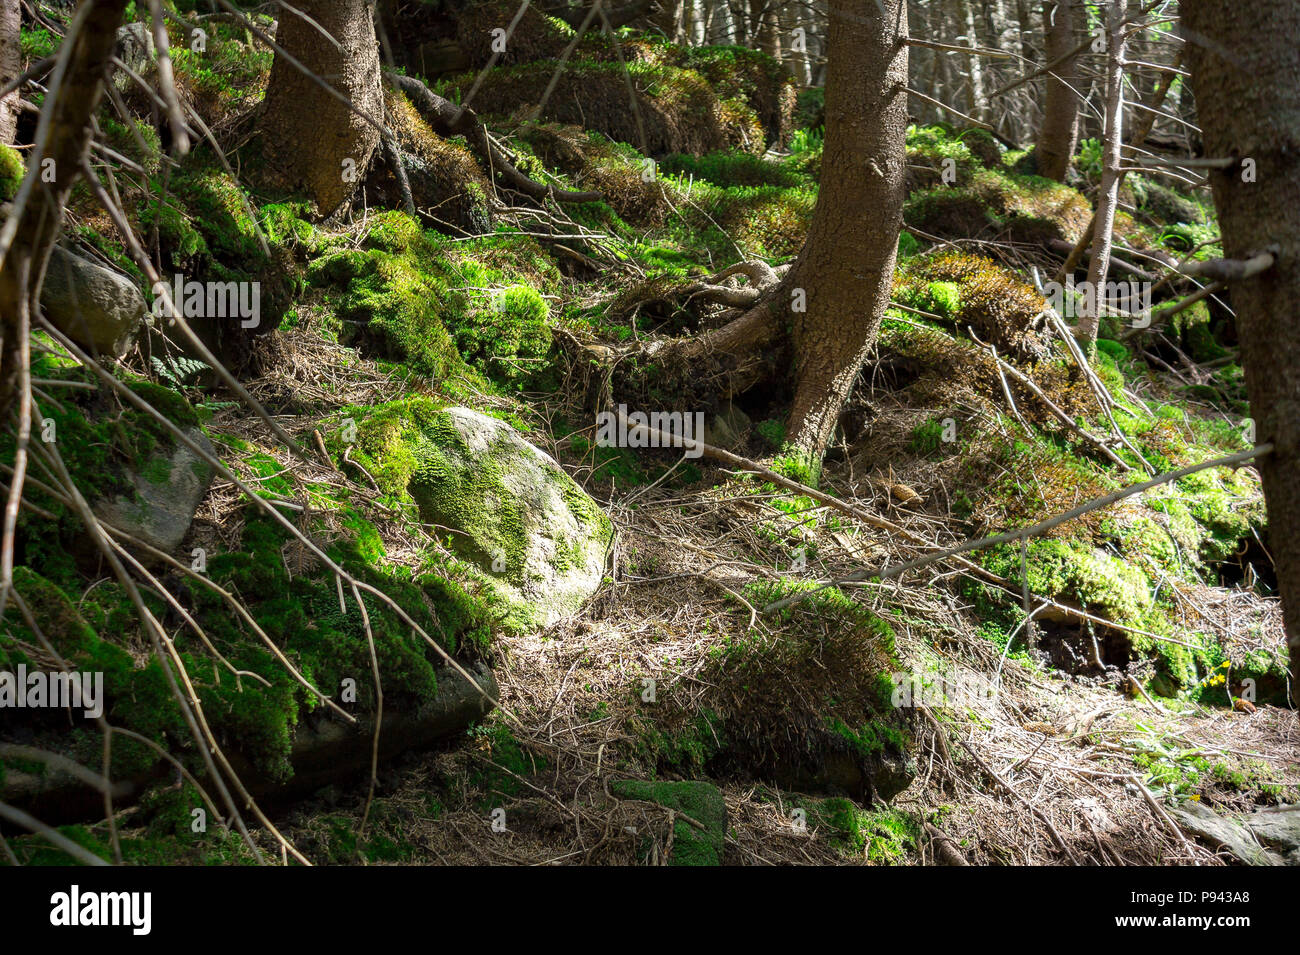 Photo of mystical forest in the mountains. Close-up view of tree roots, stones and moss. - Stock Image